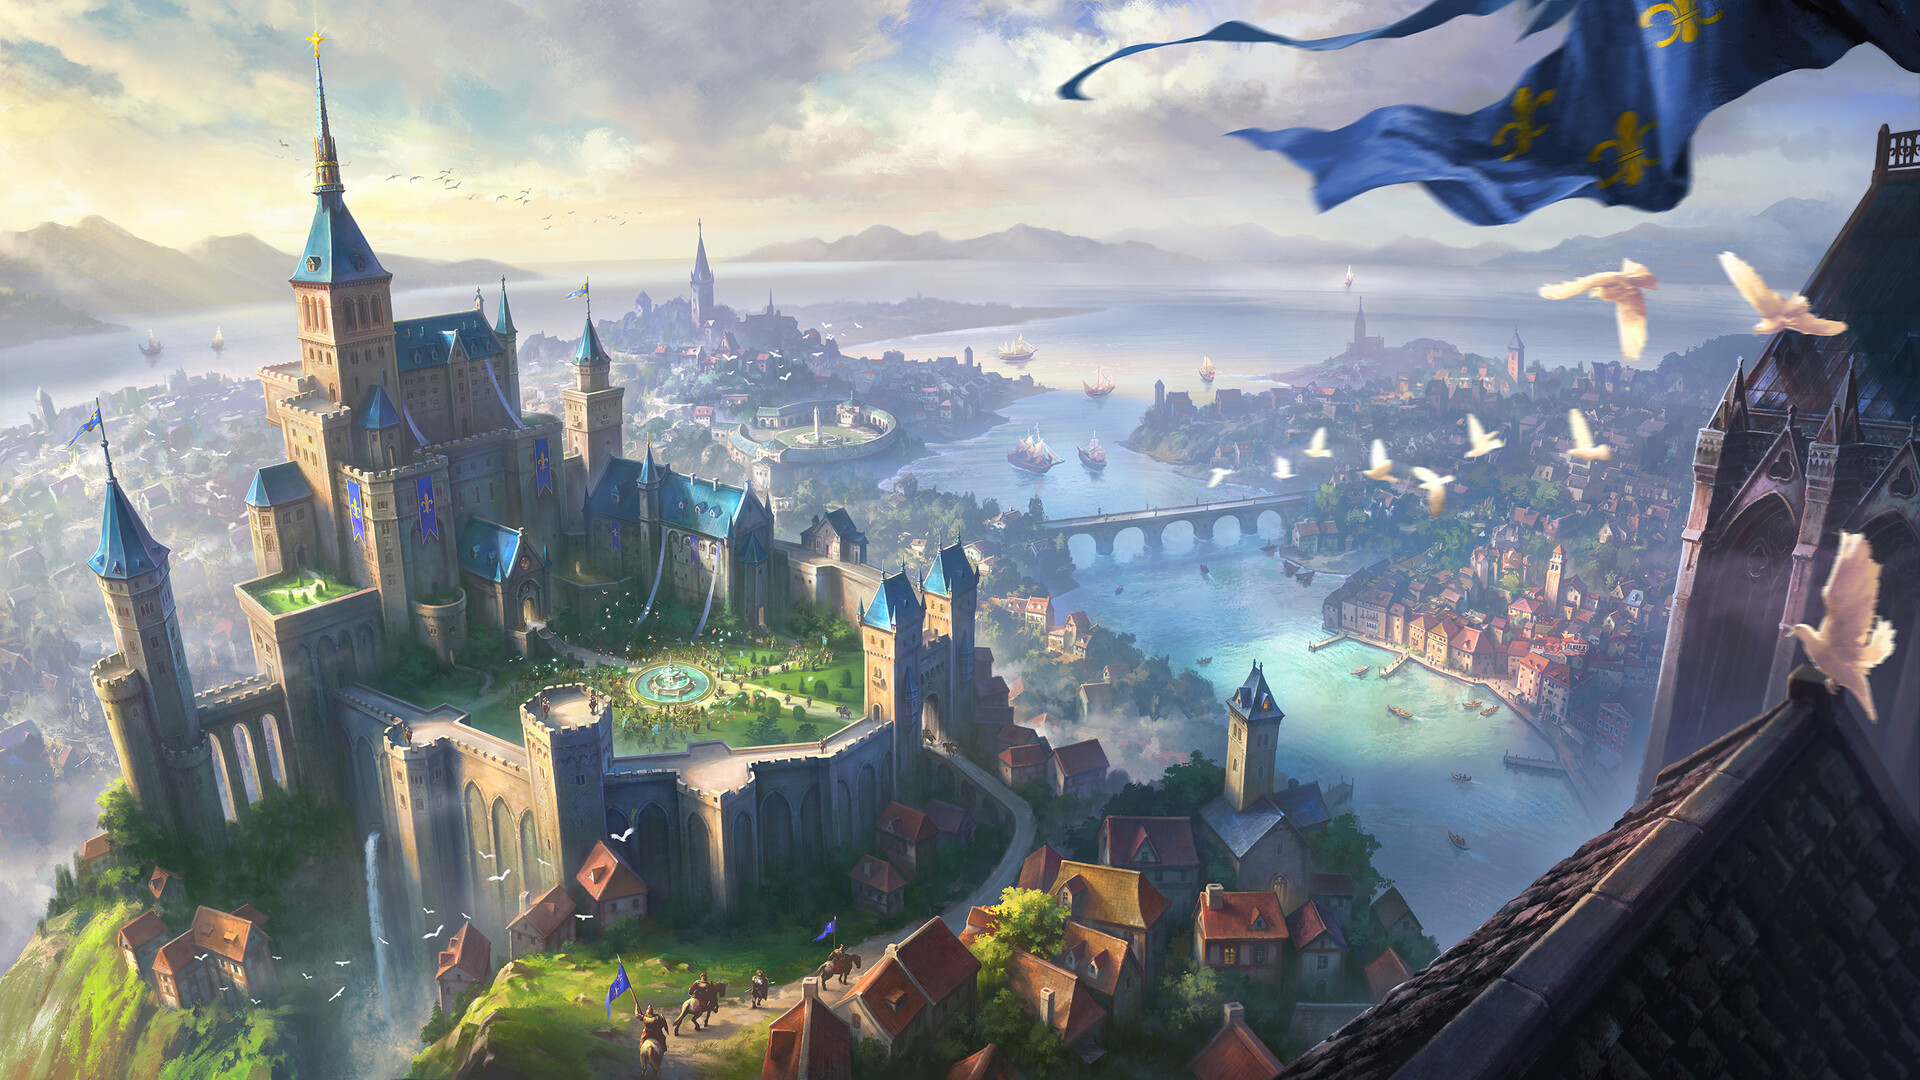 General 1920x1080 artwork fantasy art castle city cityscape digital art building architecture tower bridge sea river medieval